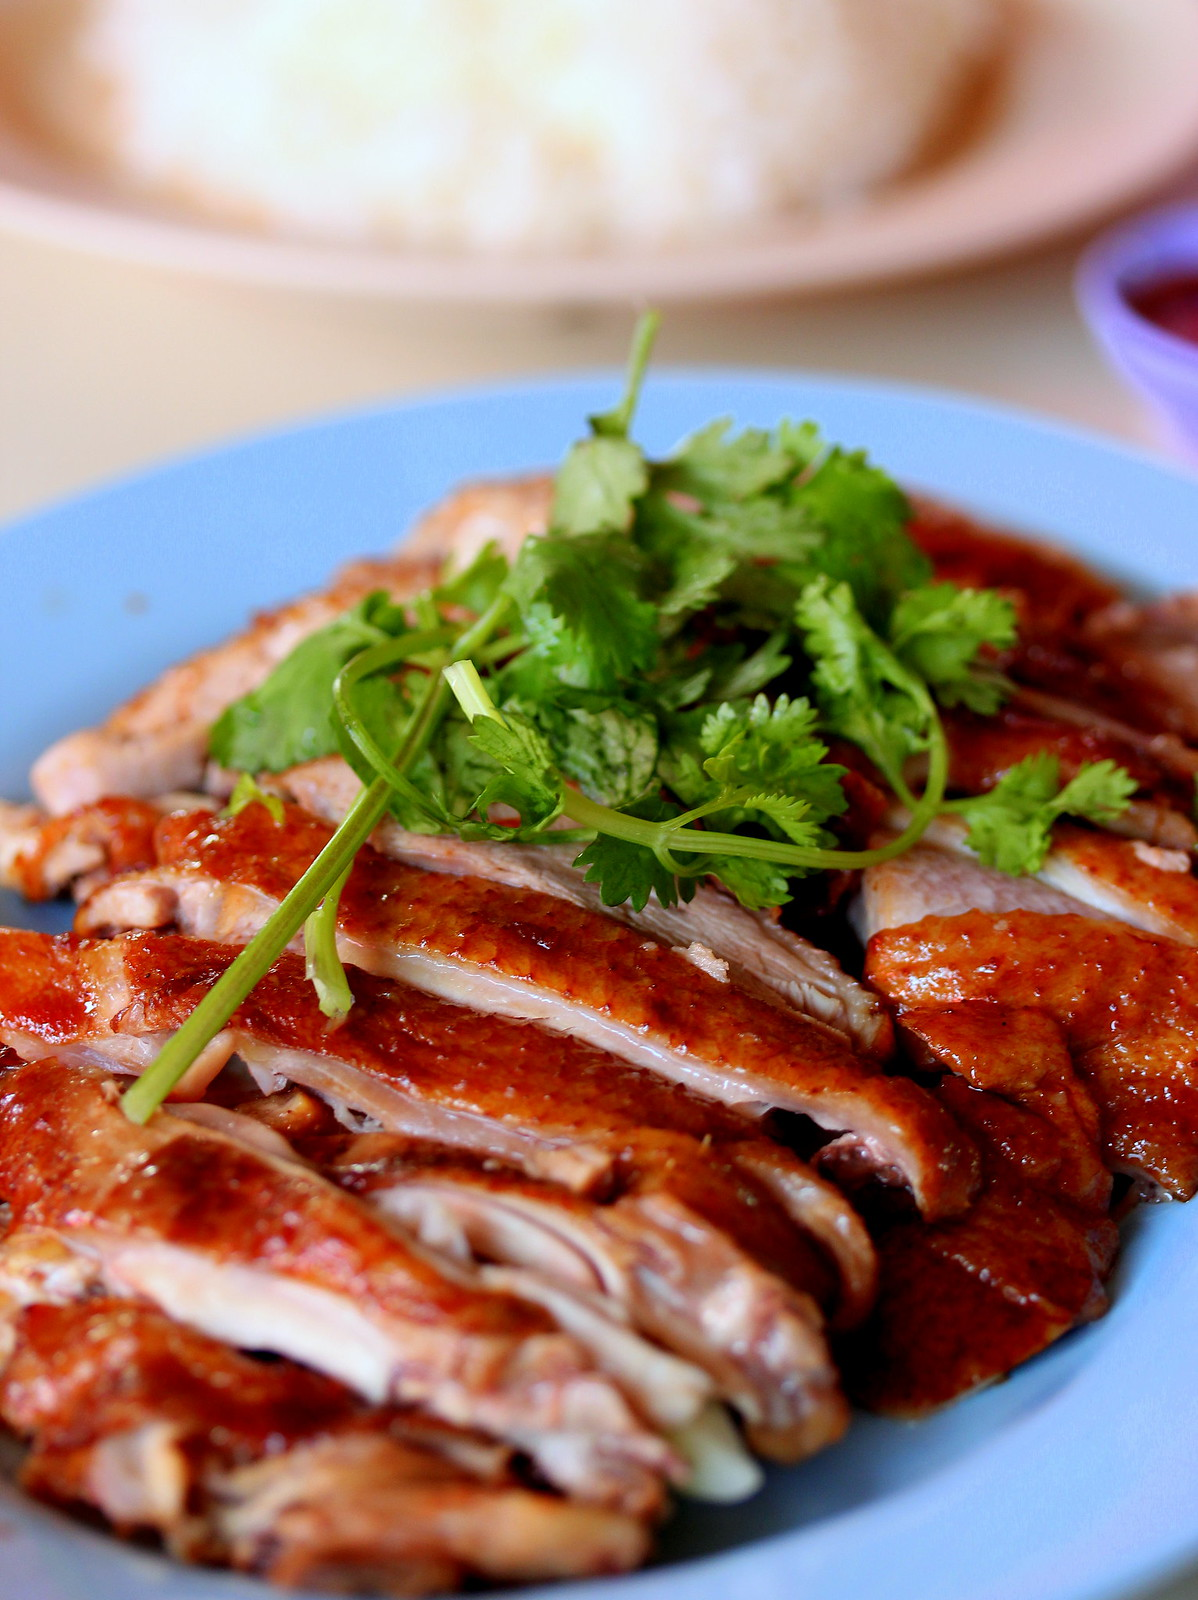 Eunos Eateries: Seng Kee Roasted Meat Duck Rice